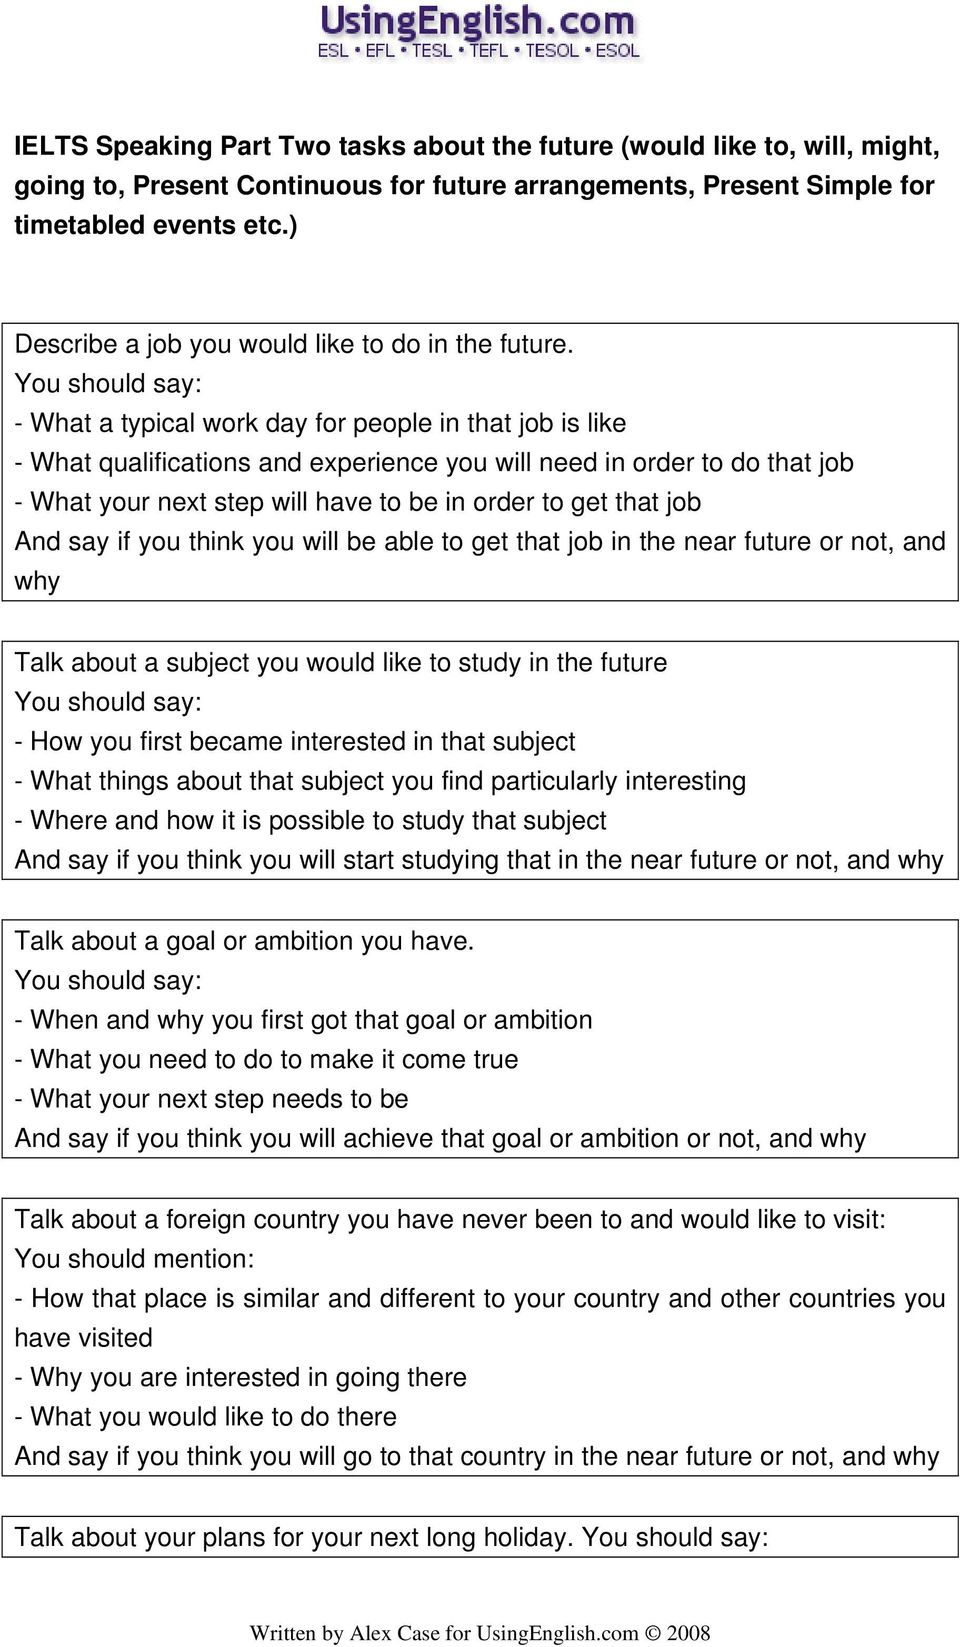 101 IELTS Speaking Part Two tasks about the Past, Present